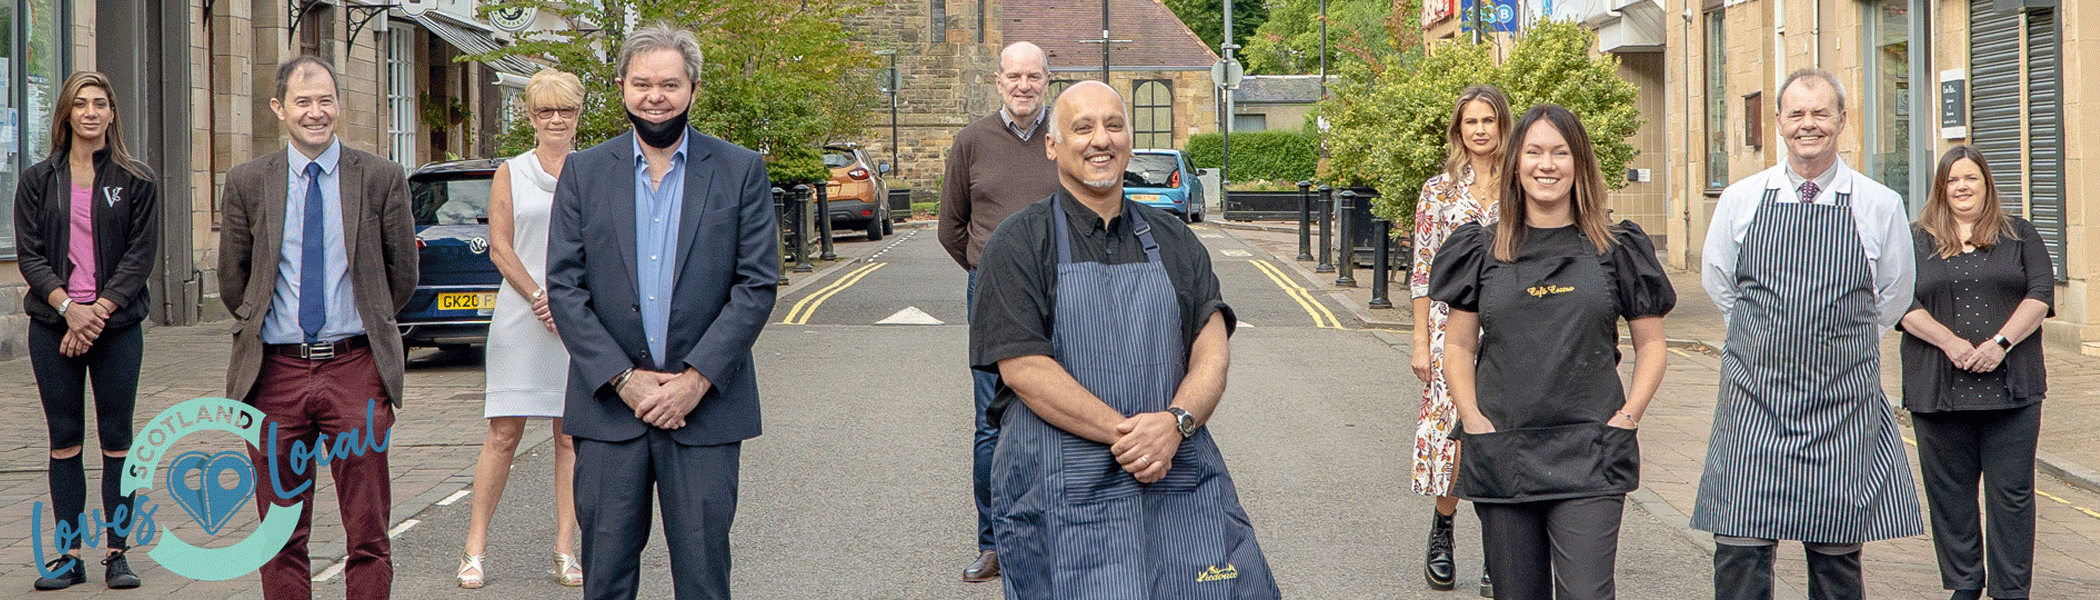 Bearsden Loves Local business owners